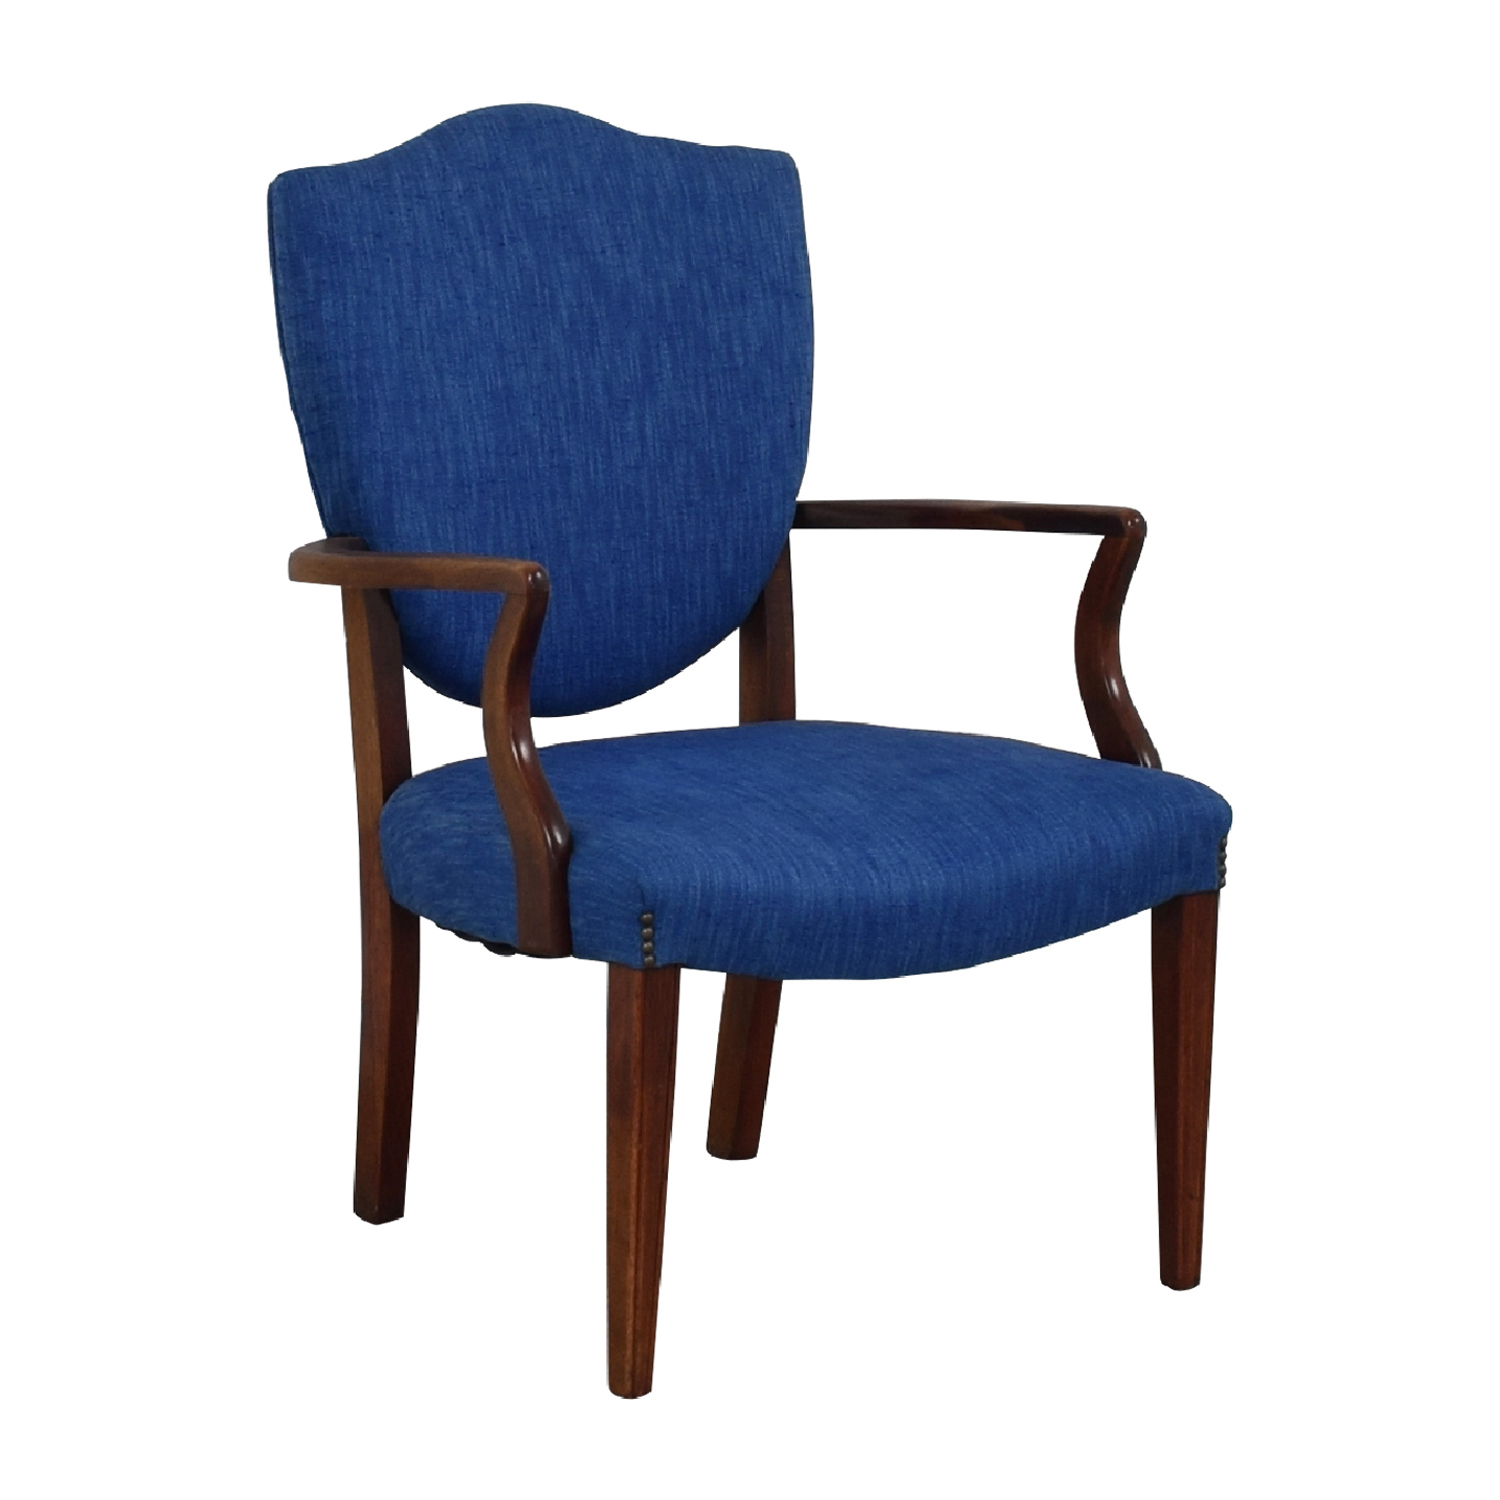 ... shop Antique Wood and Blue Upholstered Arm Chair ... - 64% OFF - Antique Wood And Blue Upholstered Arm Chair / Chairs